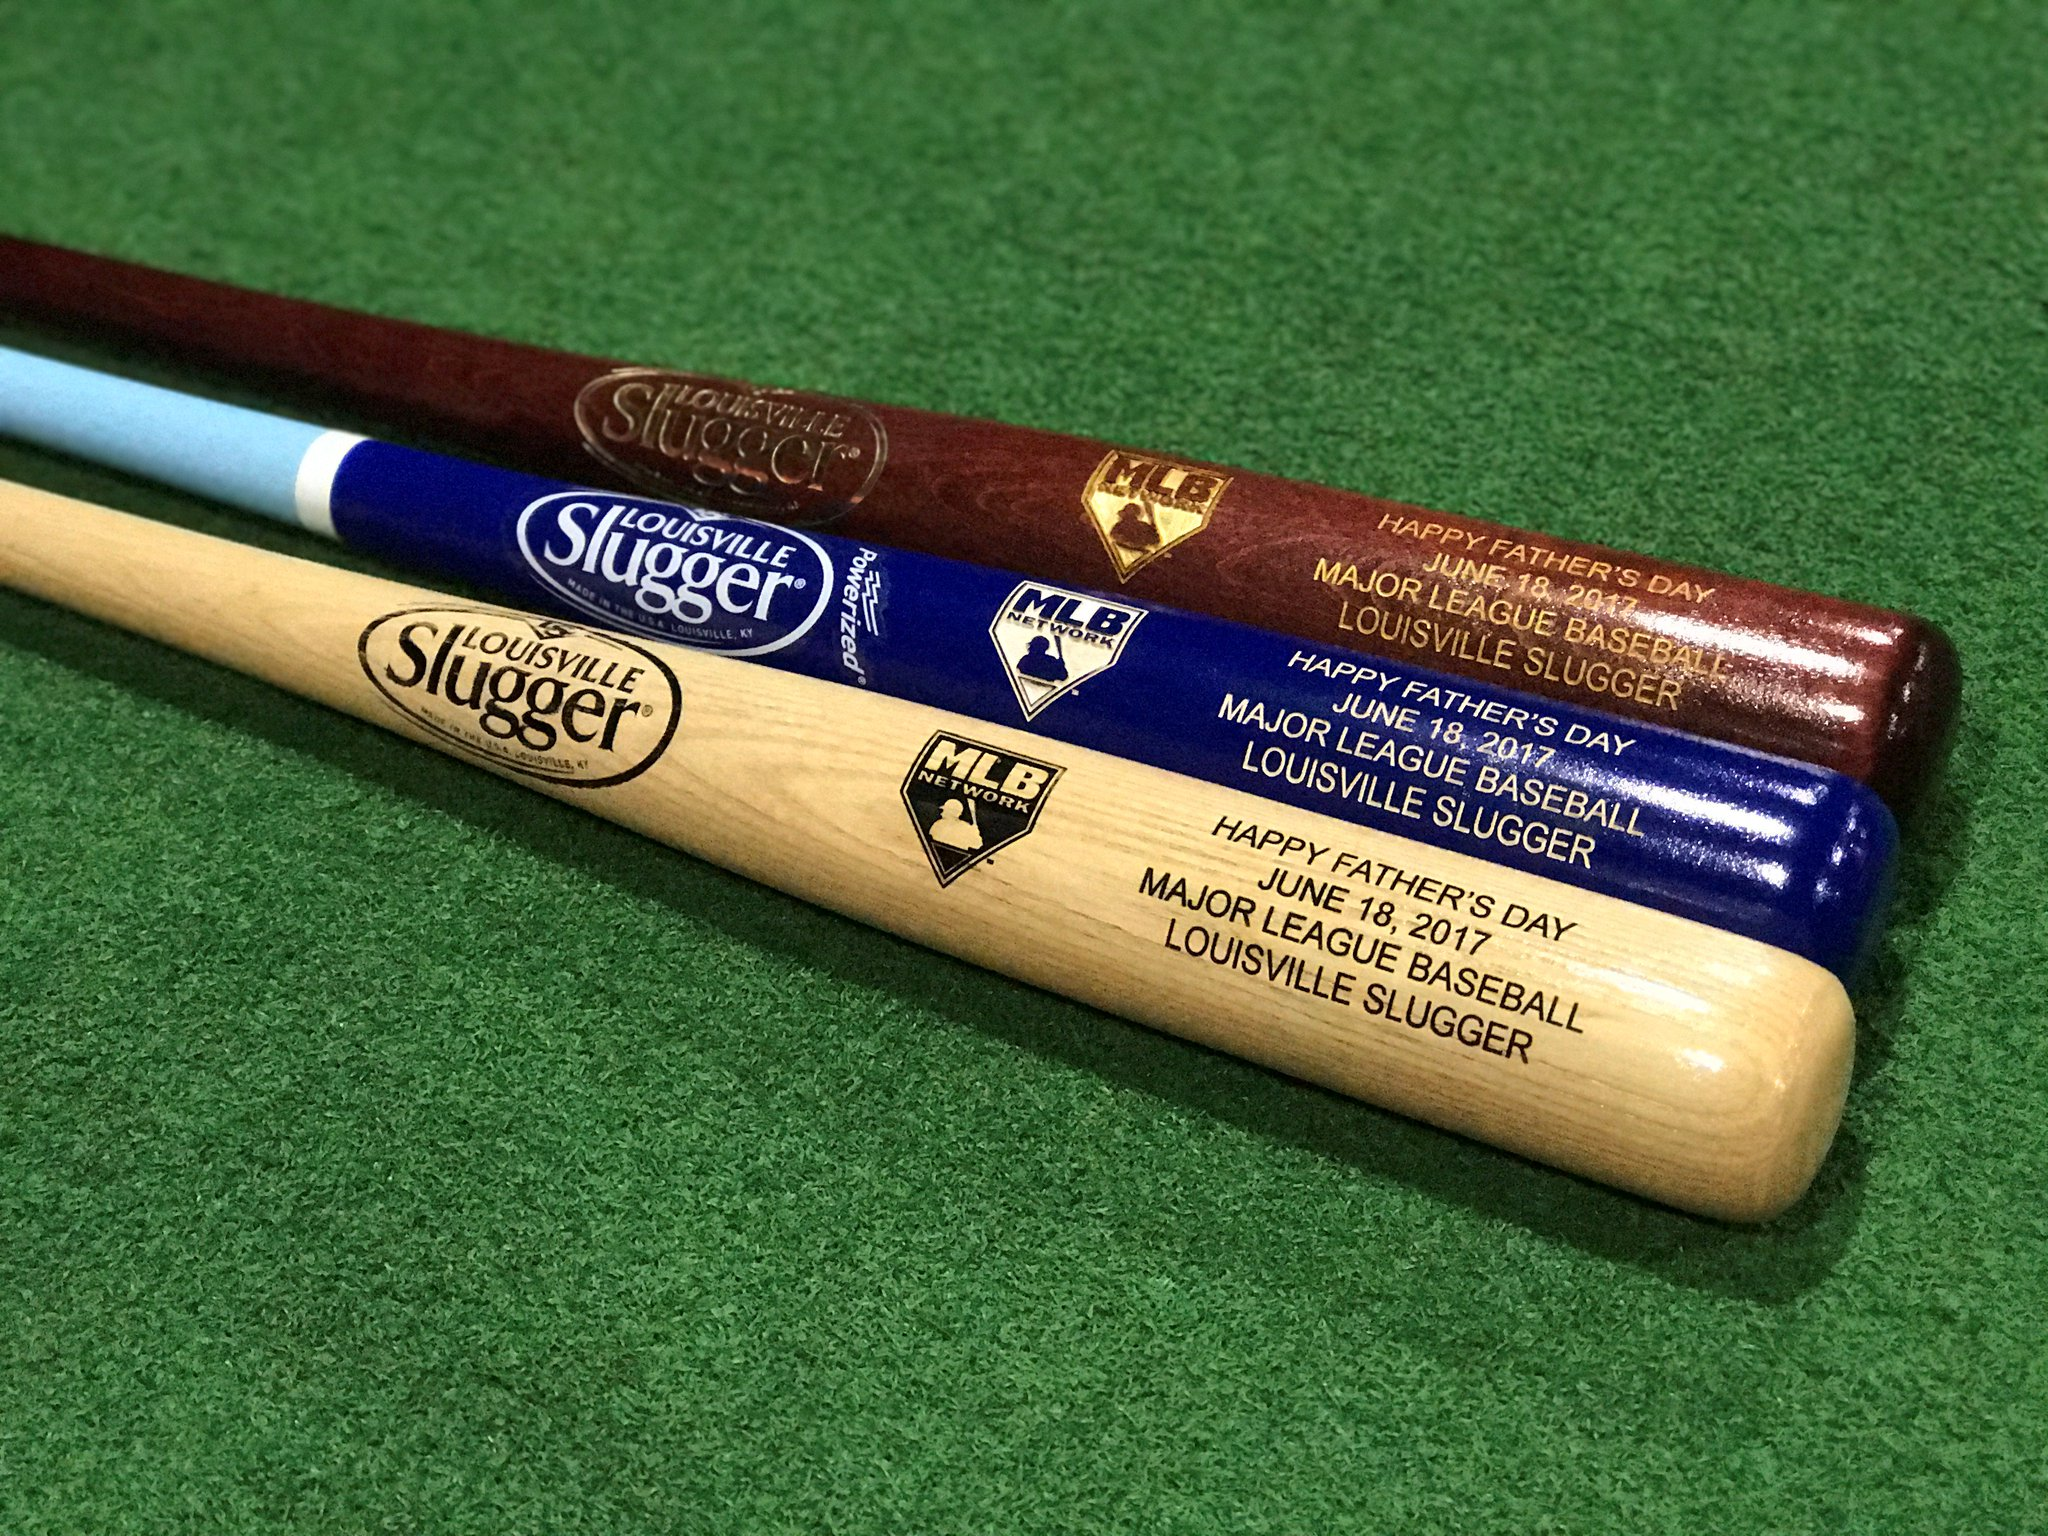 Happy Father's Day! RETWEET now for a chance at a @sluggernation #FathersDay bat! https://t.co/7Fo57TX1OR